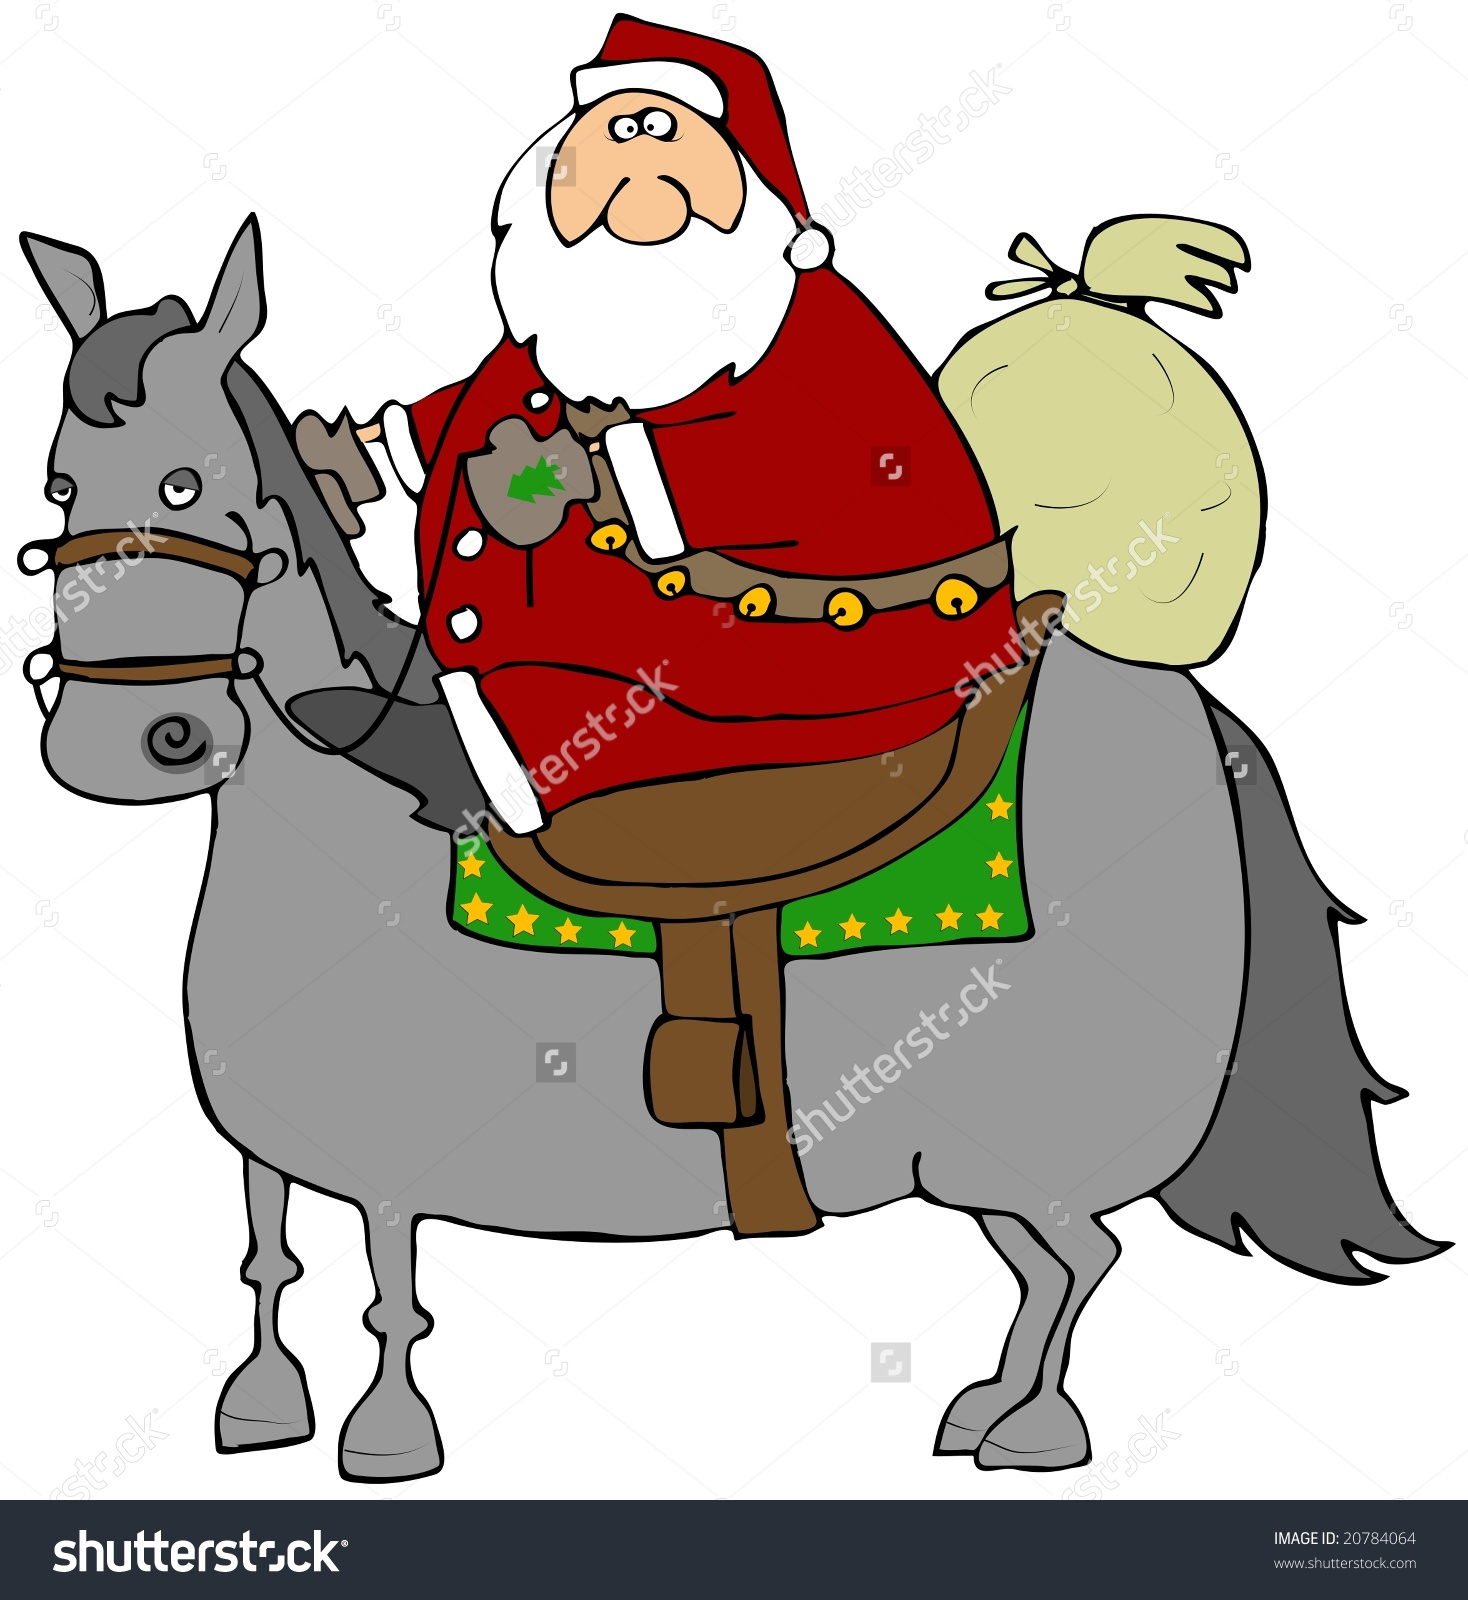 Santa Riding A Horse Stock Photo 20784064 : Shutterstock.